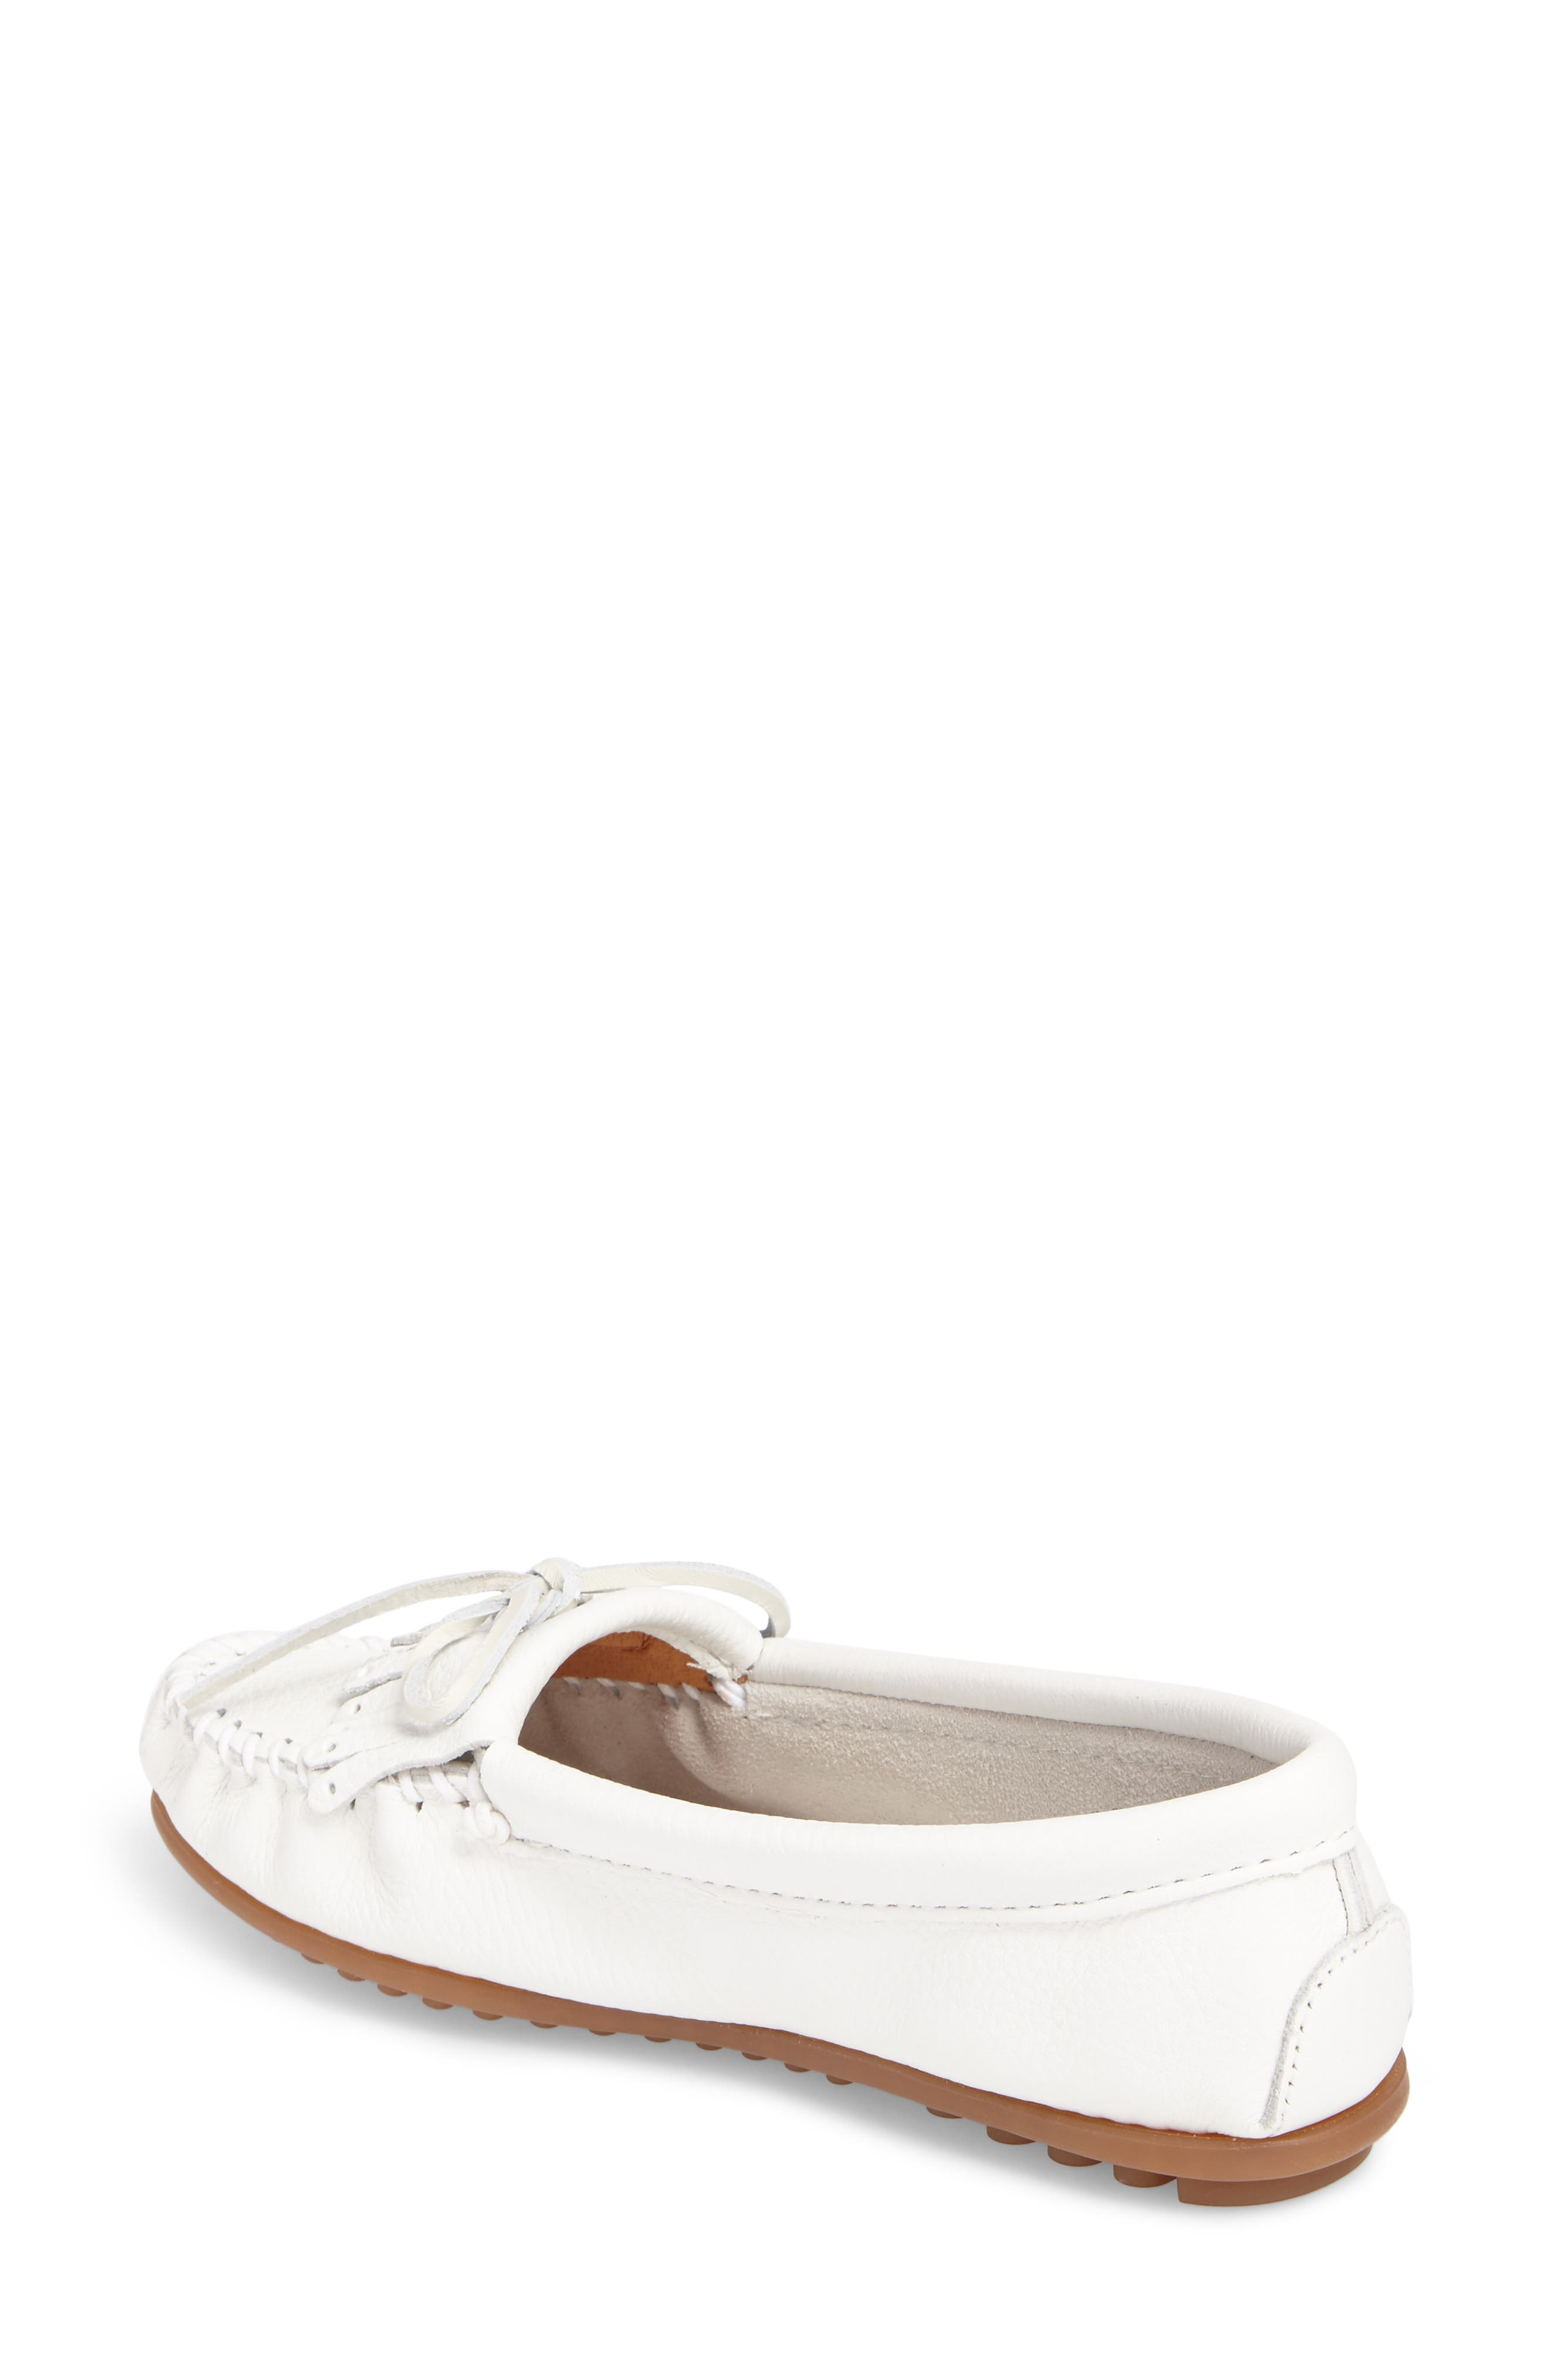 Kilty Moccasin,                             Alternate thumbnail 2, color,                             White Leather